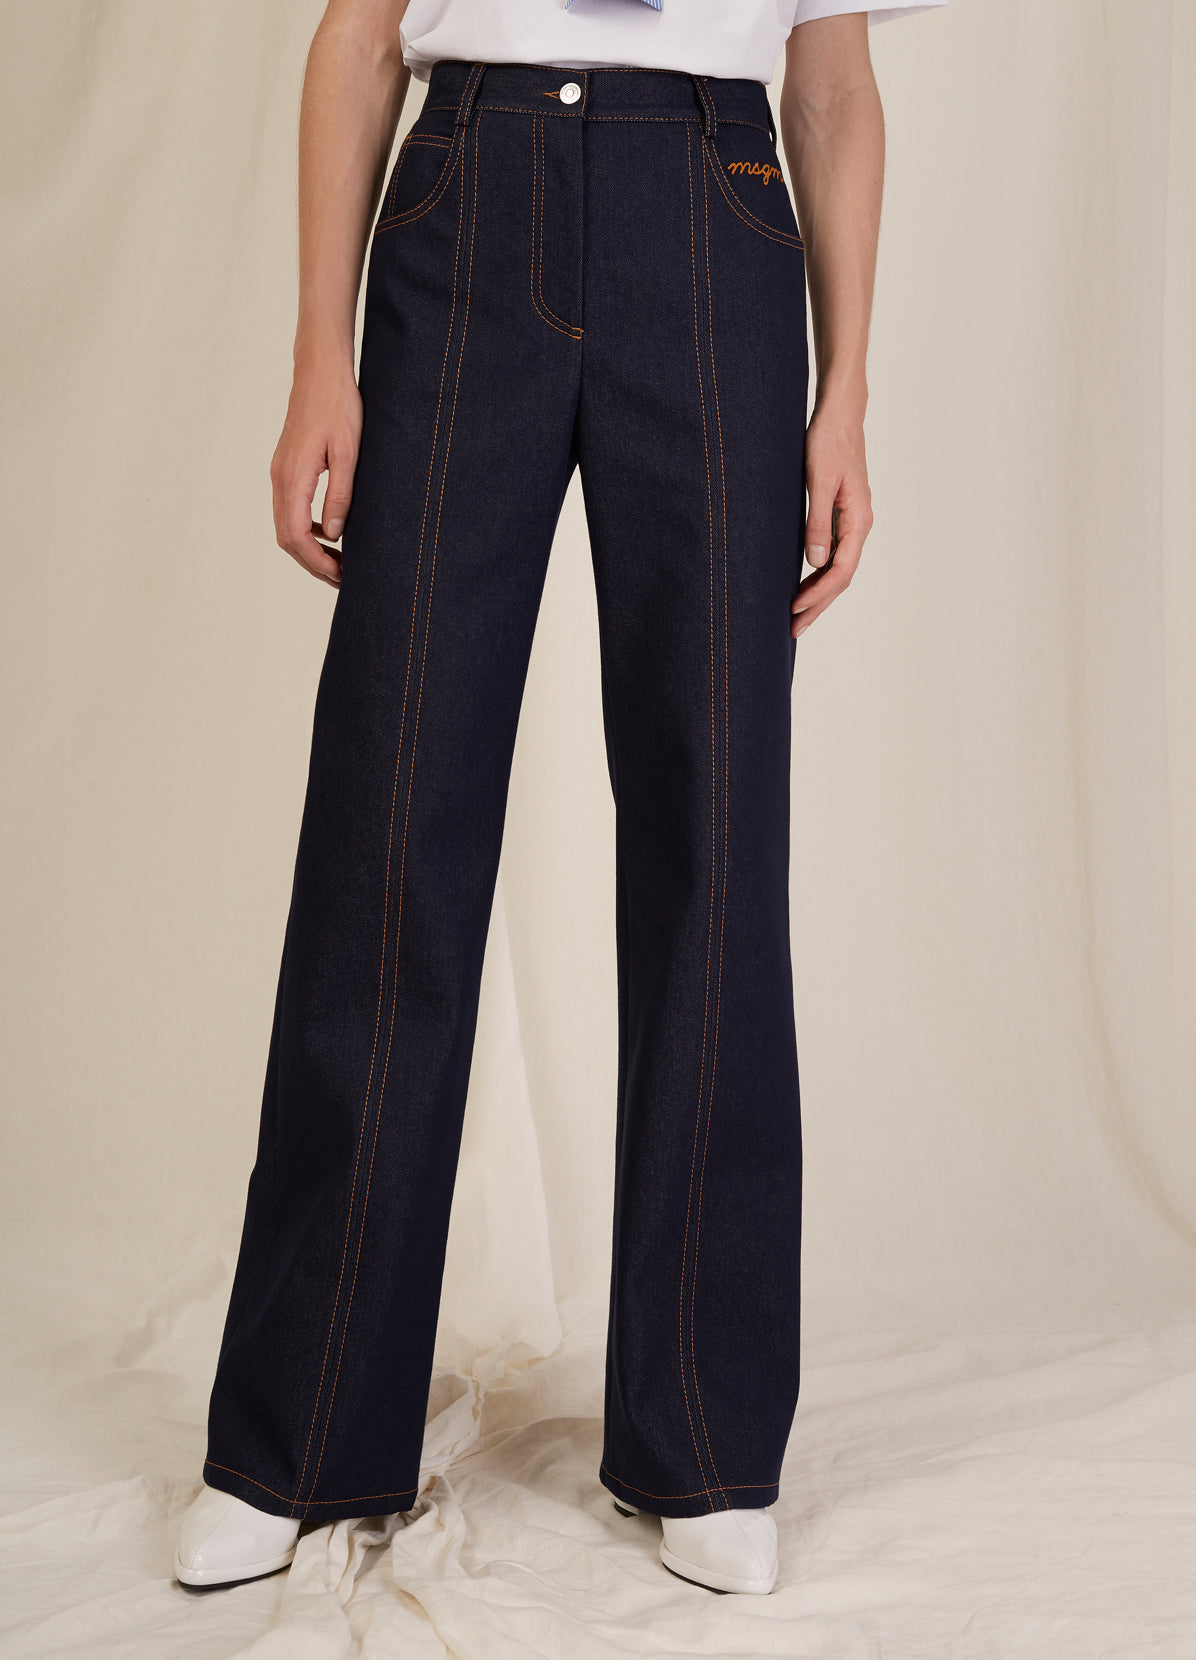 HIGH WAIST DENIM